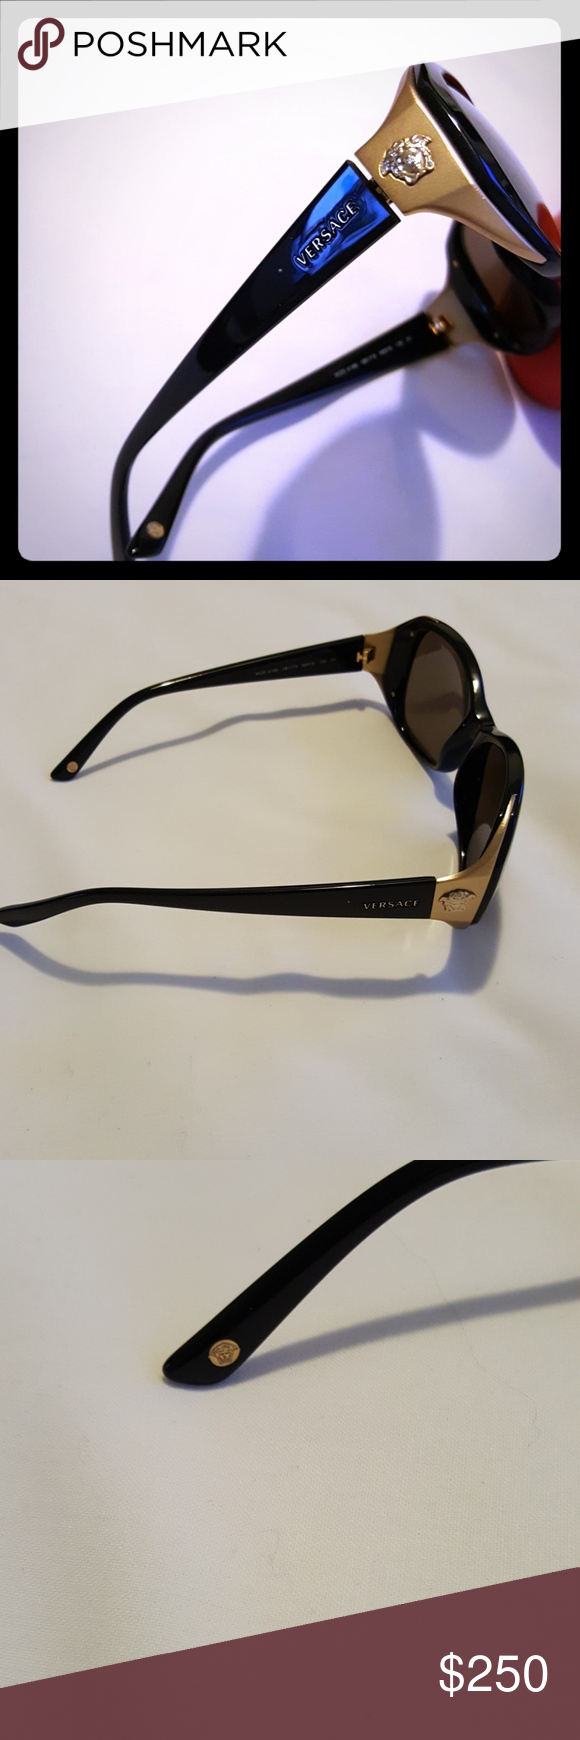 c43c342a894a PRICE DROP💚💛💜VERSACE SUNGLASSES VERSACE LOGO gold frame with black..so  elegant Versace Accessories Glasses